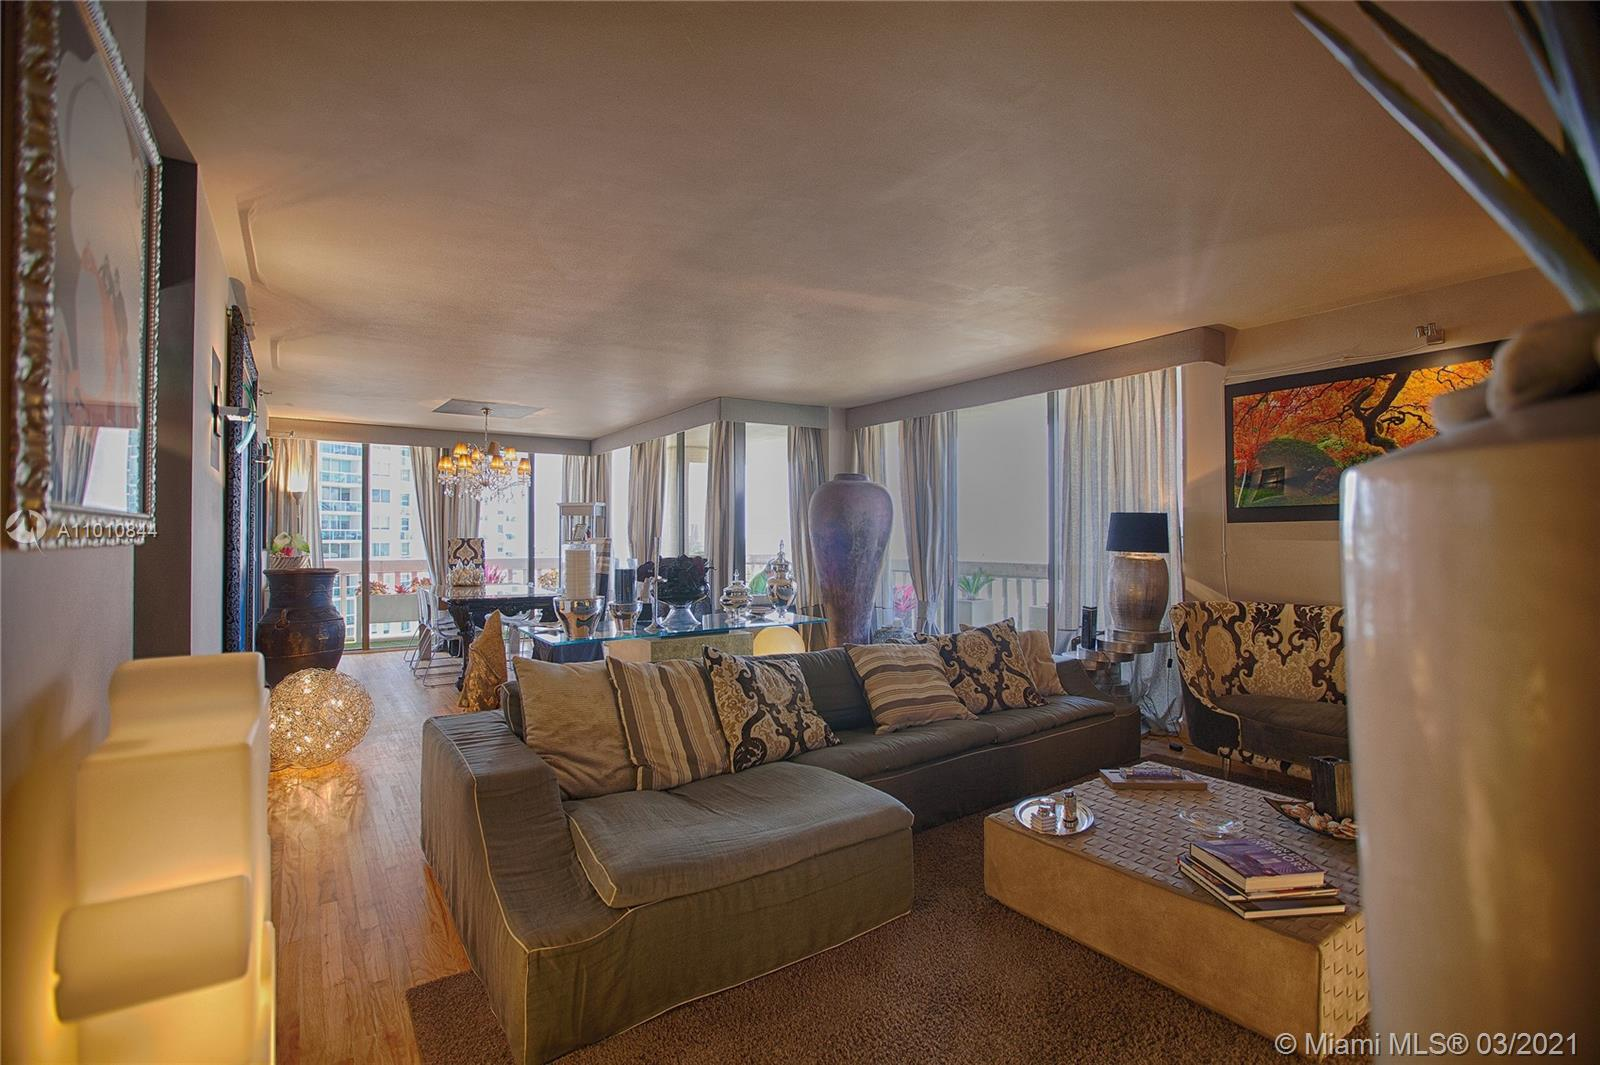 Turnberry Towers #7D - 19355 Turnberry Way #7D, Aventura, FL 33180